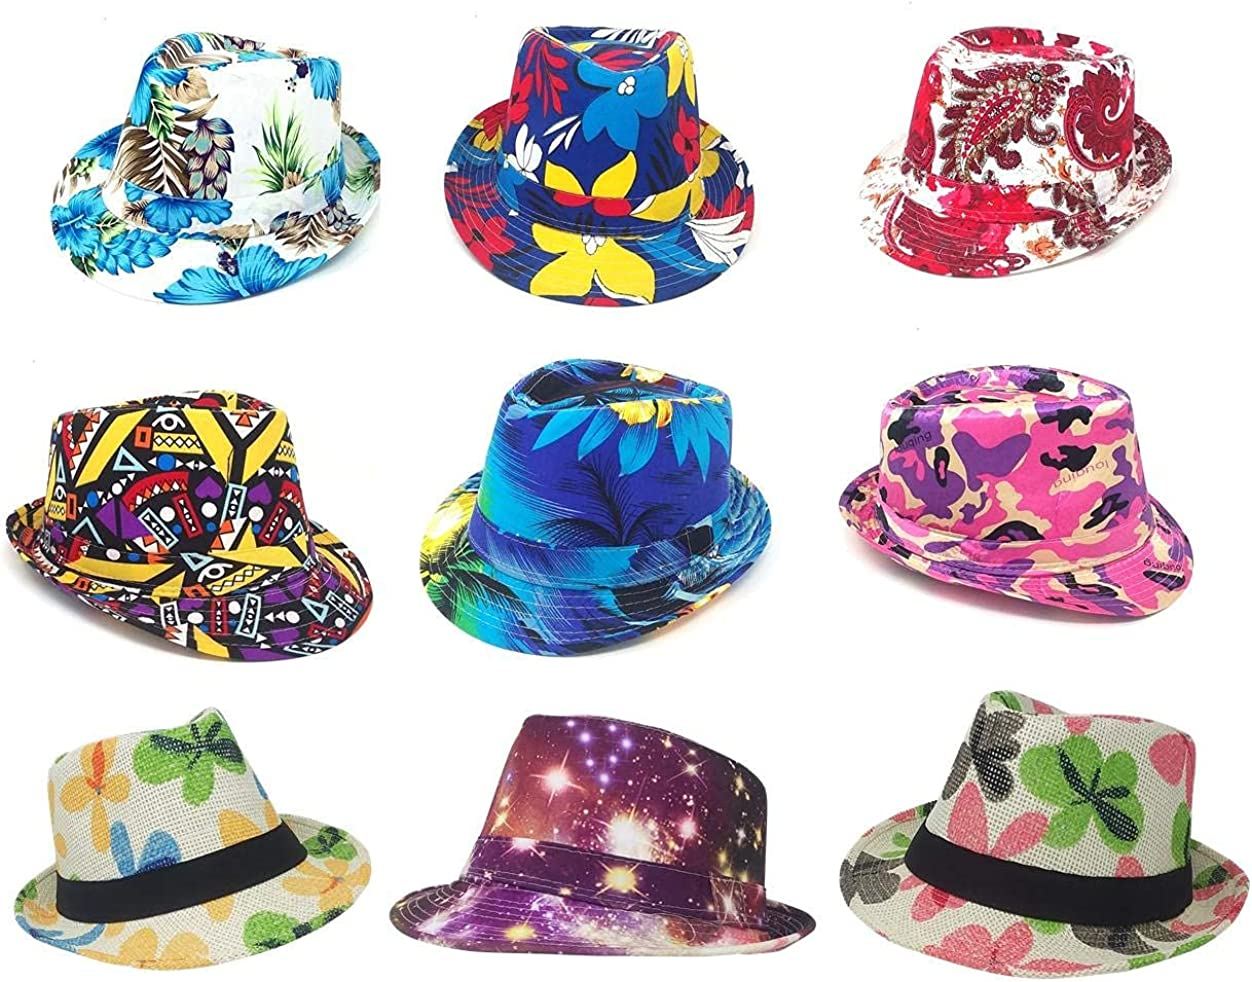 Peri Vallon Assortment Store Full Color Wholesale Print At the price Party Hats